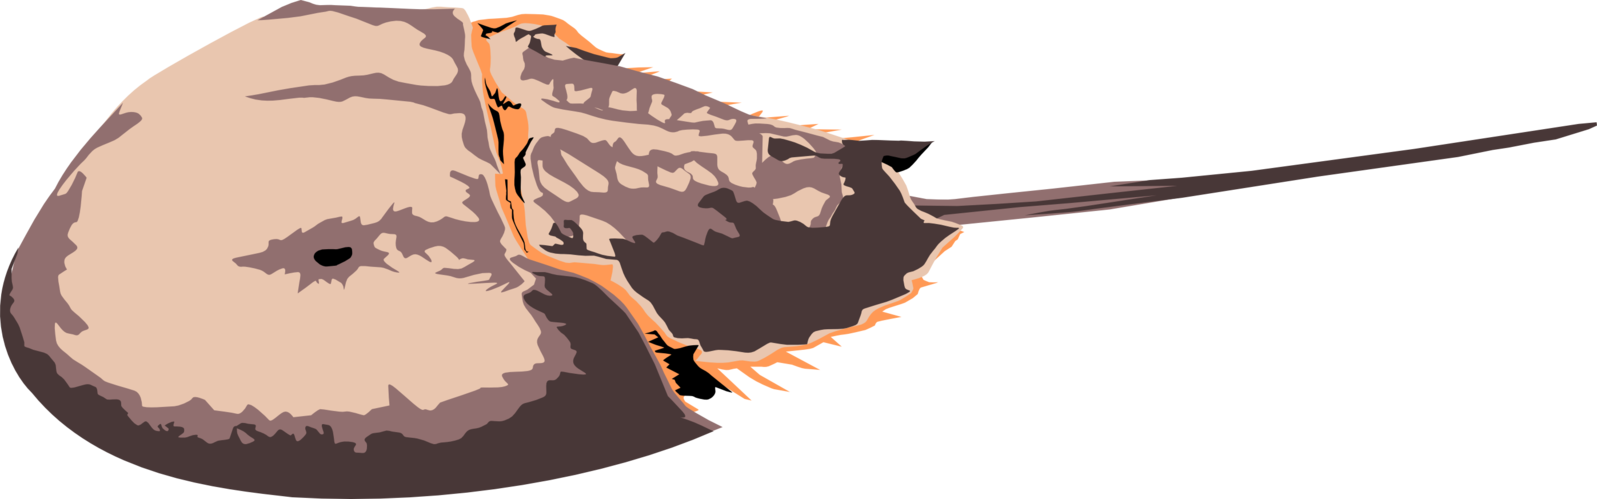 Horseshoe crab png. By michell vall on